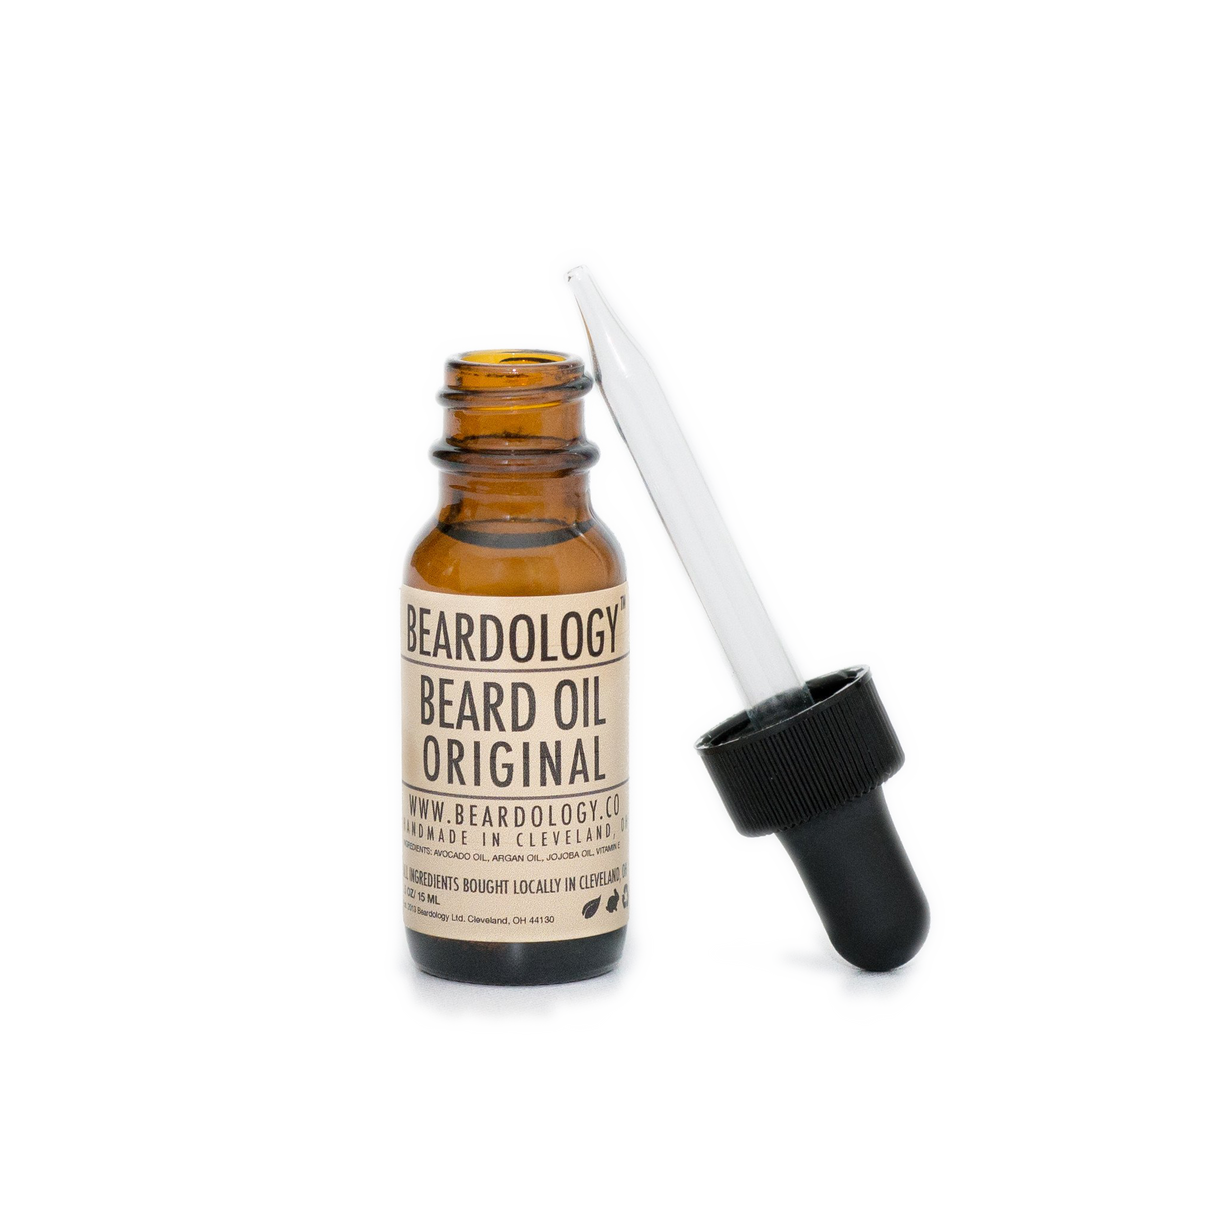 Half Ounce Original Beard Oil - $1 Monthly Subscription